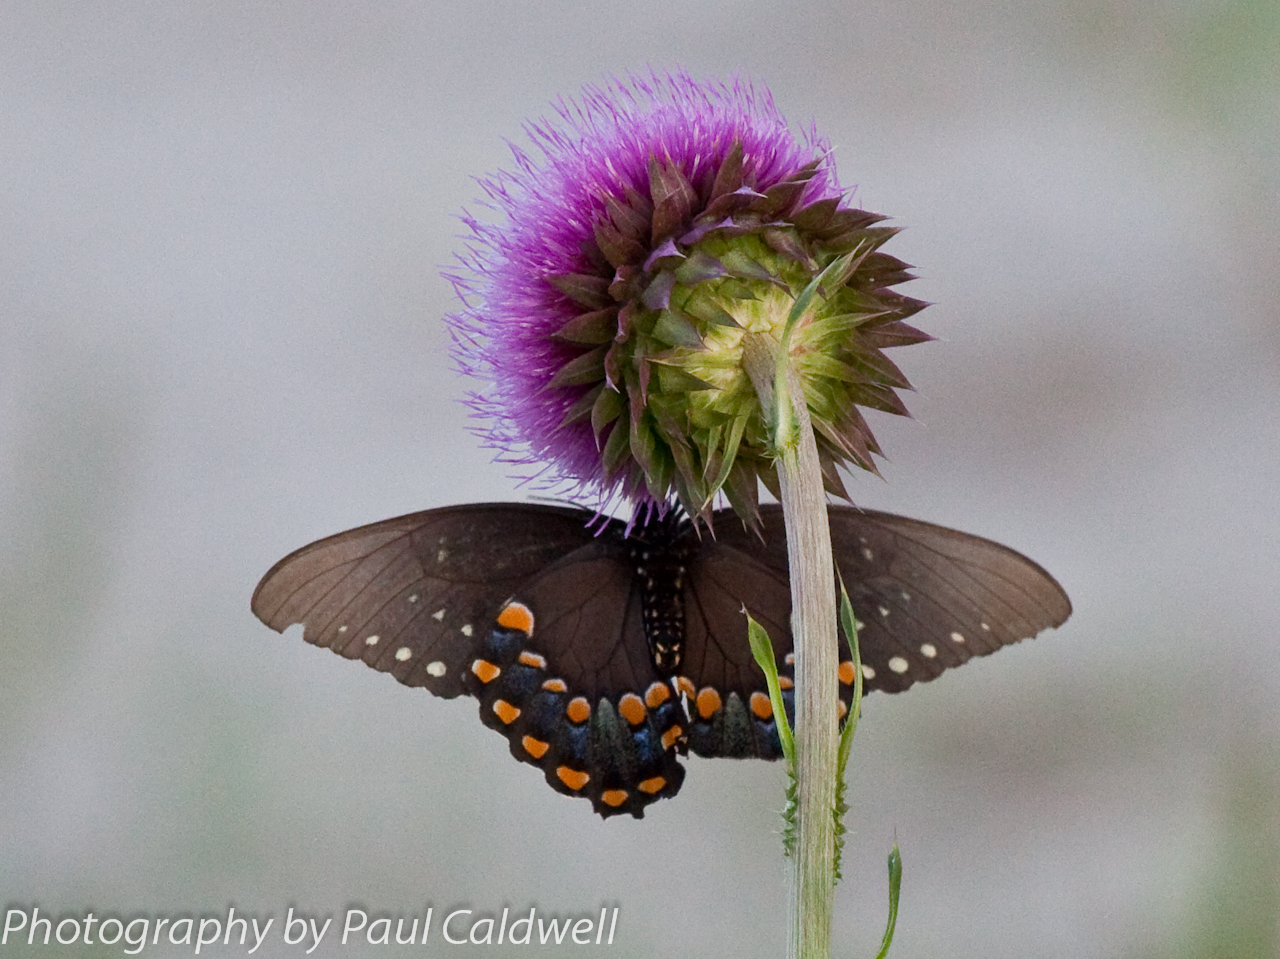 Butterfly and thistle in the Boxley Valley, Buffalo National River